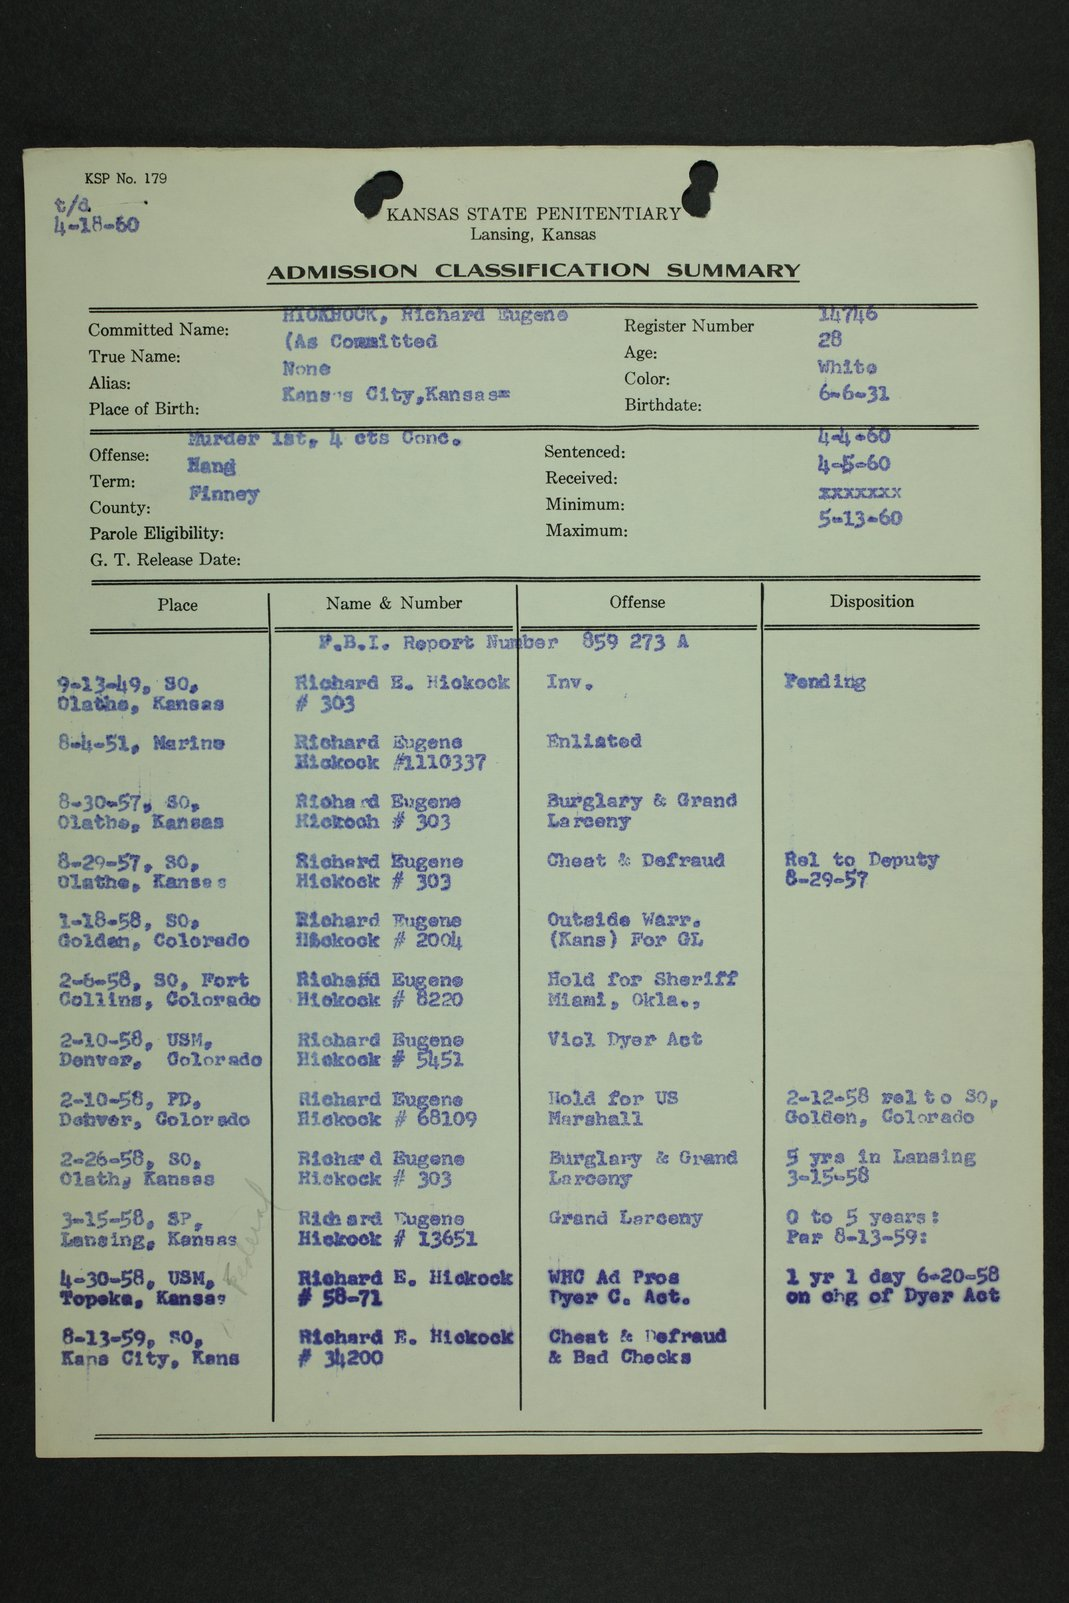 Richard Eugene Hickock inmate case file - 5